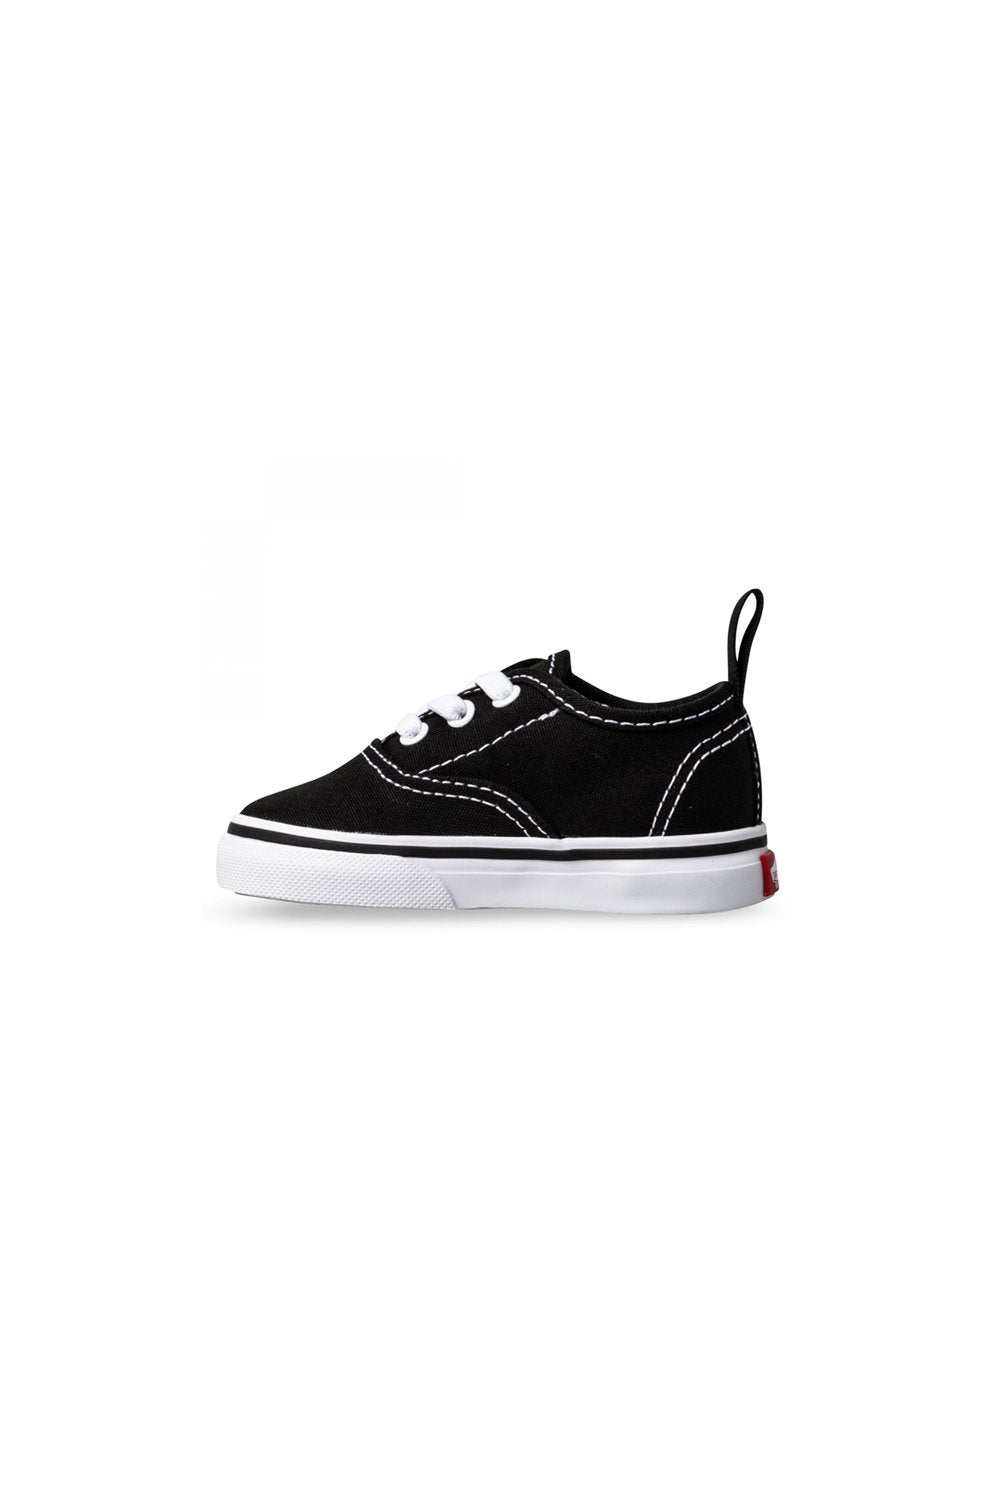 Vans Authentic Toddler Black / White Shoe